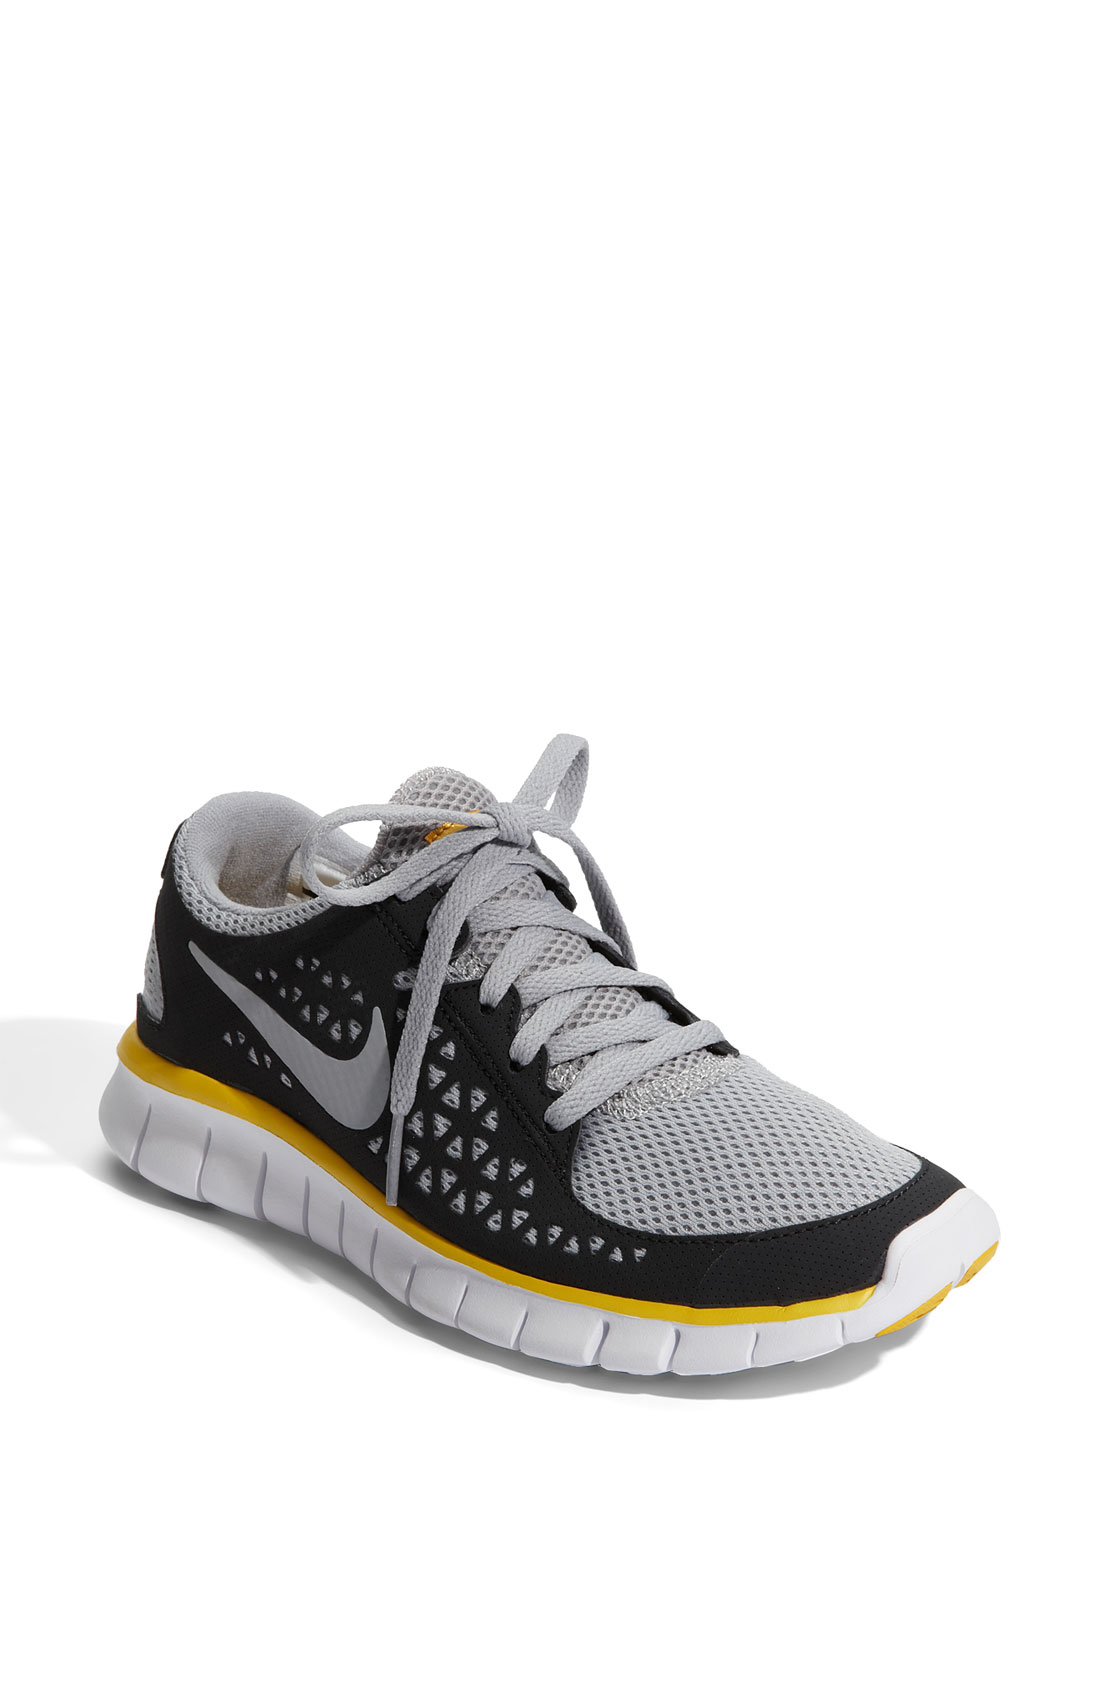 Livestrong Tennis Shoes